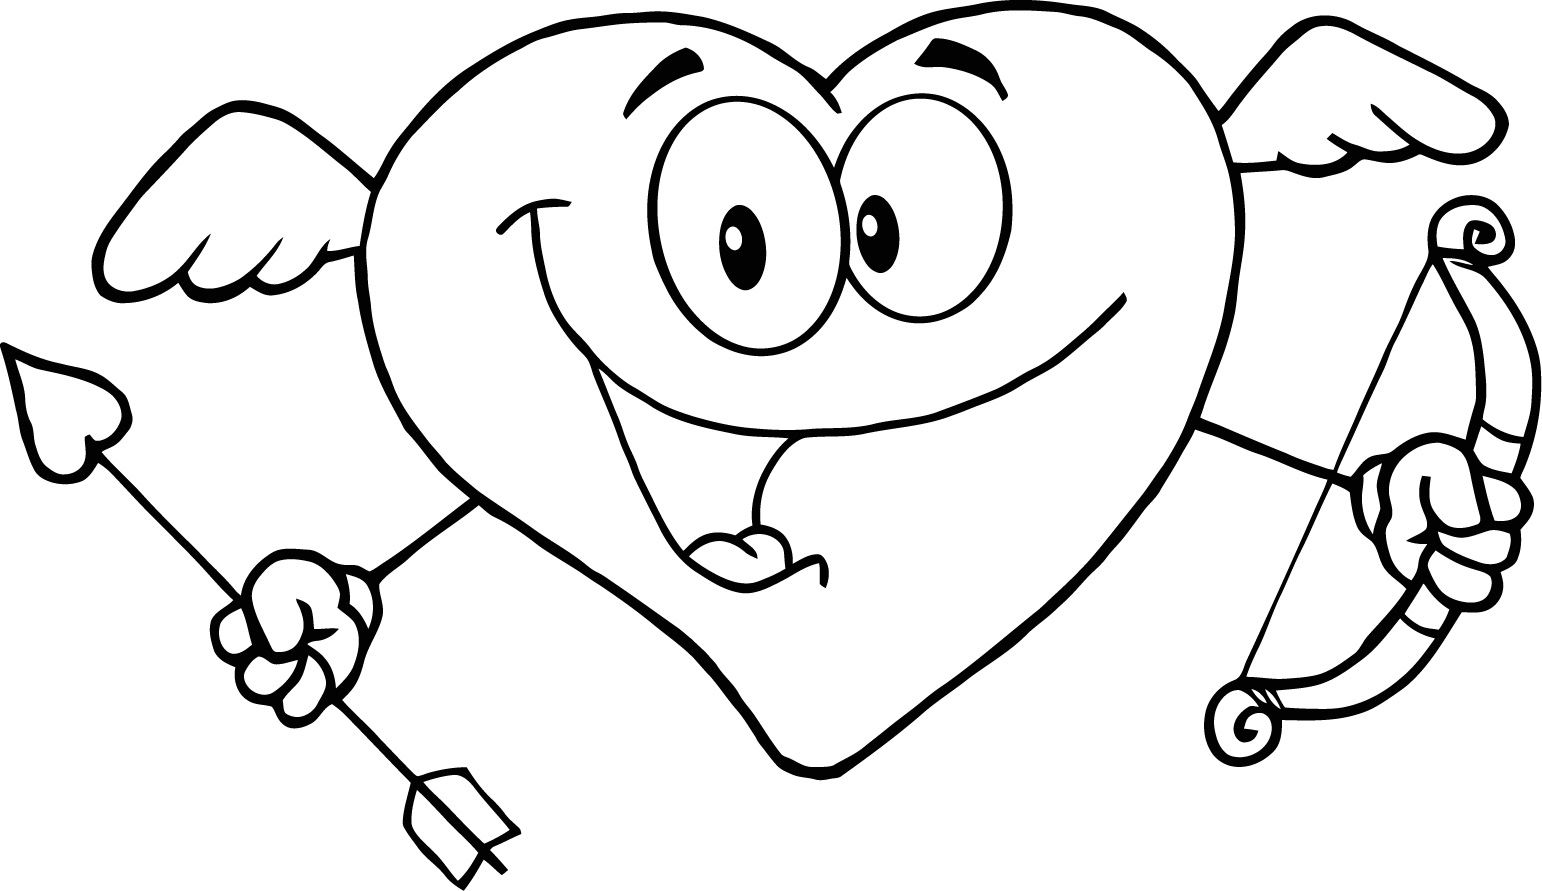 face for coloring free printable smiley face coloring pages for kids for face coloring